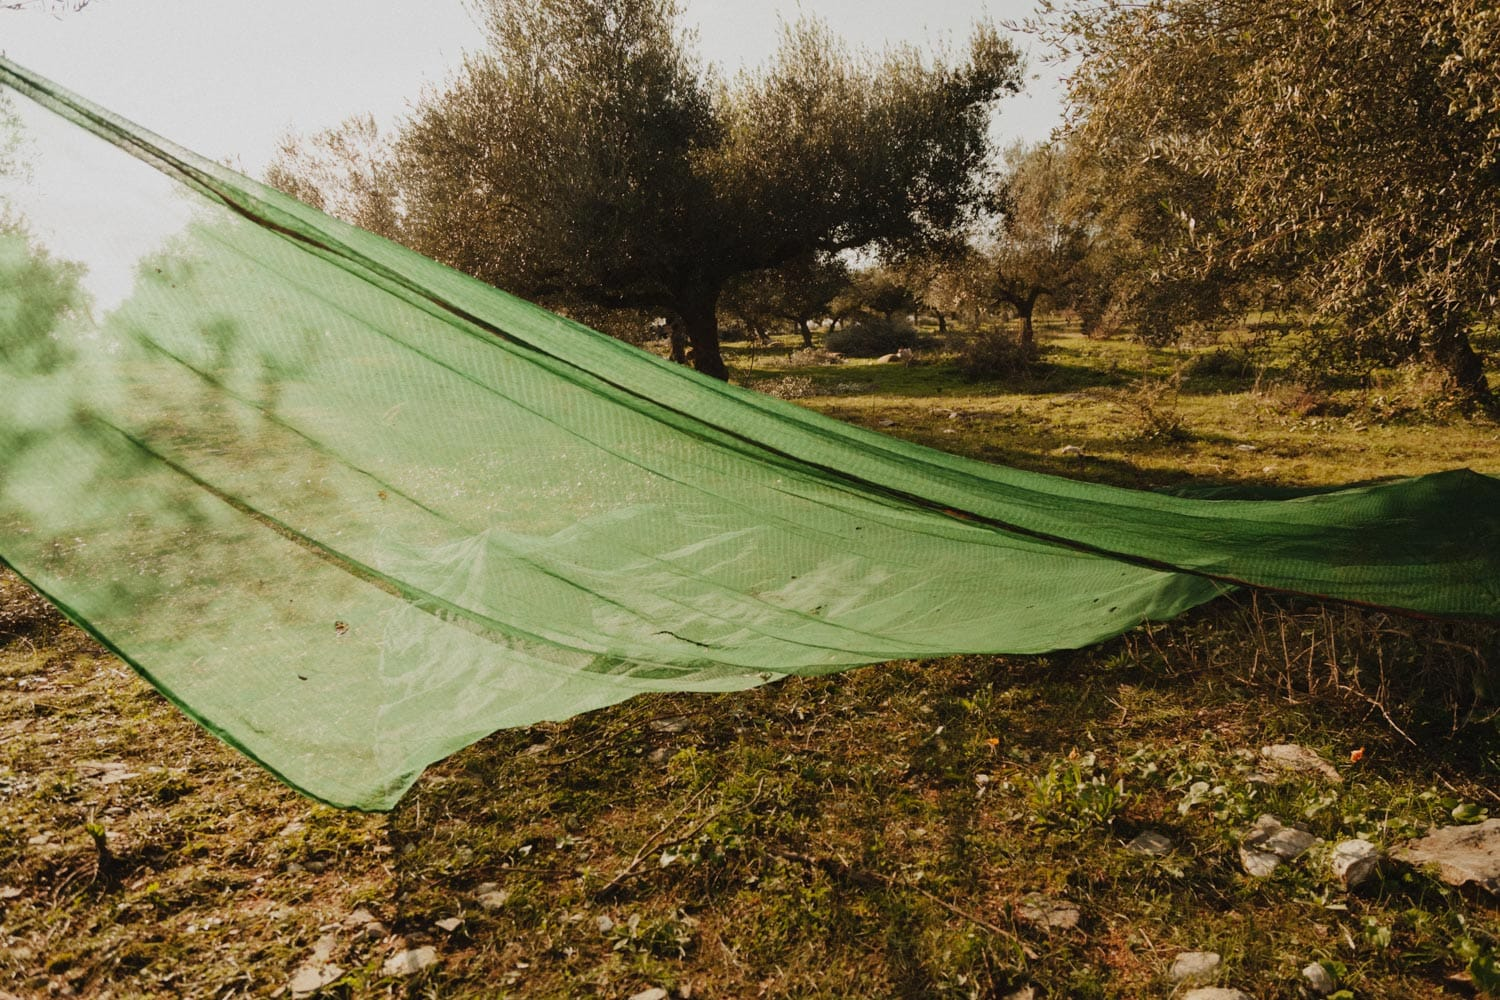 A harvest net is spread out under the olive trees that are to be harvested.